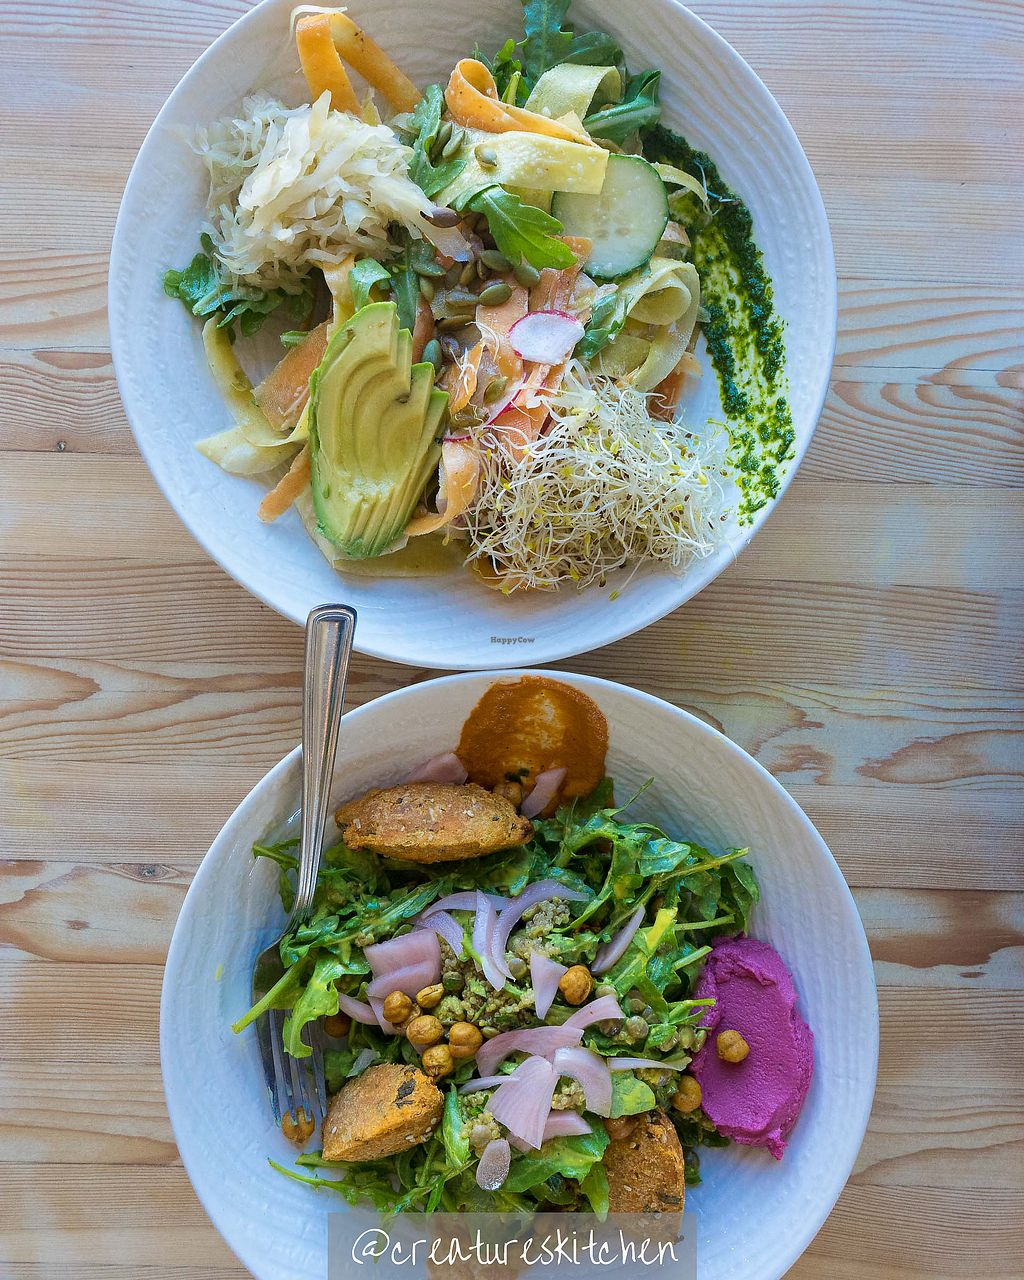 "Photo of Vital Supply Co  by <a href=""/members/profile/EmmaCebuliak"">EmmaCebuliak</a> <br/>Earth Bowl and Yam Falafel Bowl <br/> August 29, 2017  - <a href='/contact/abuse/image/99819/298693'>Report</a>"